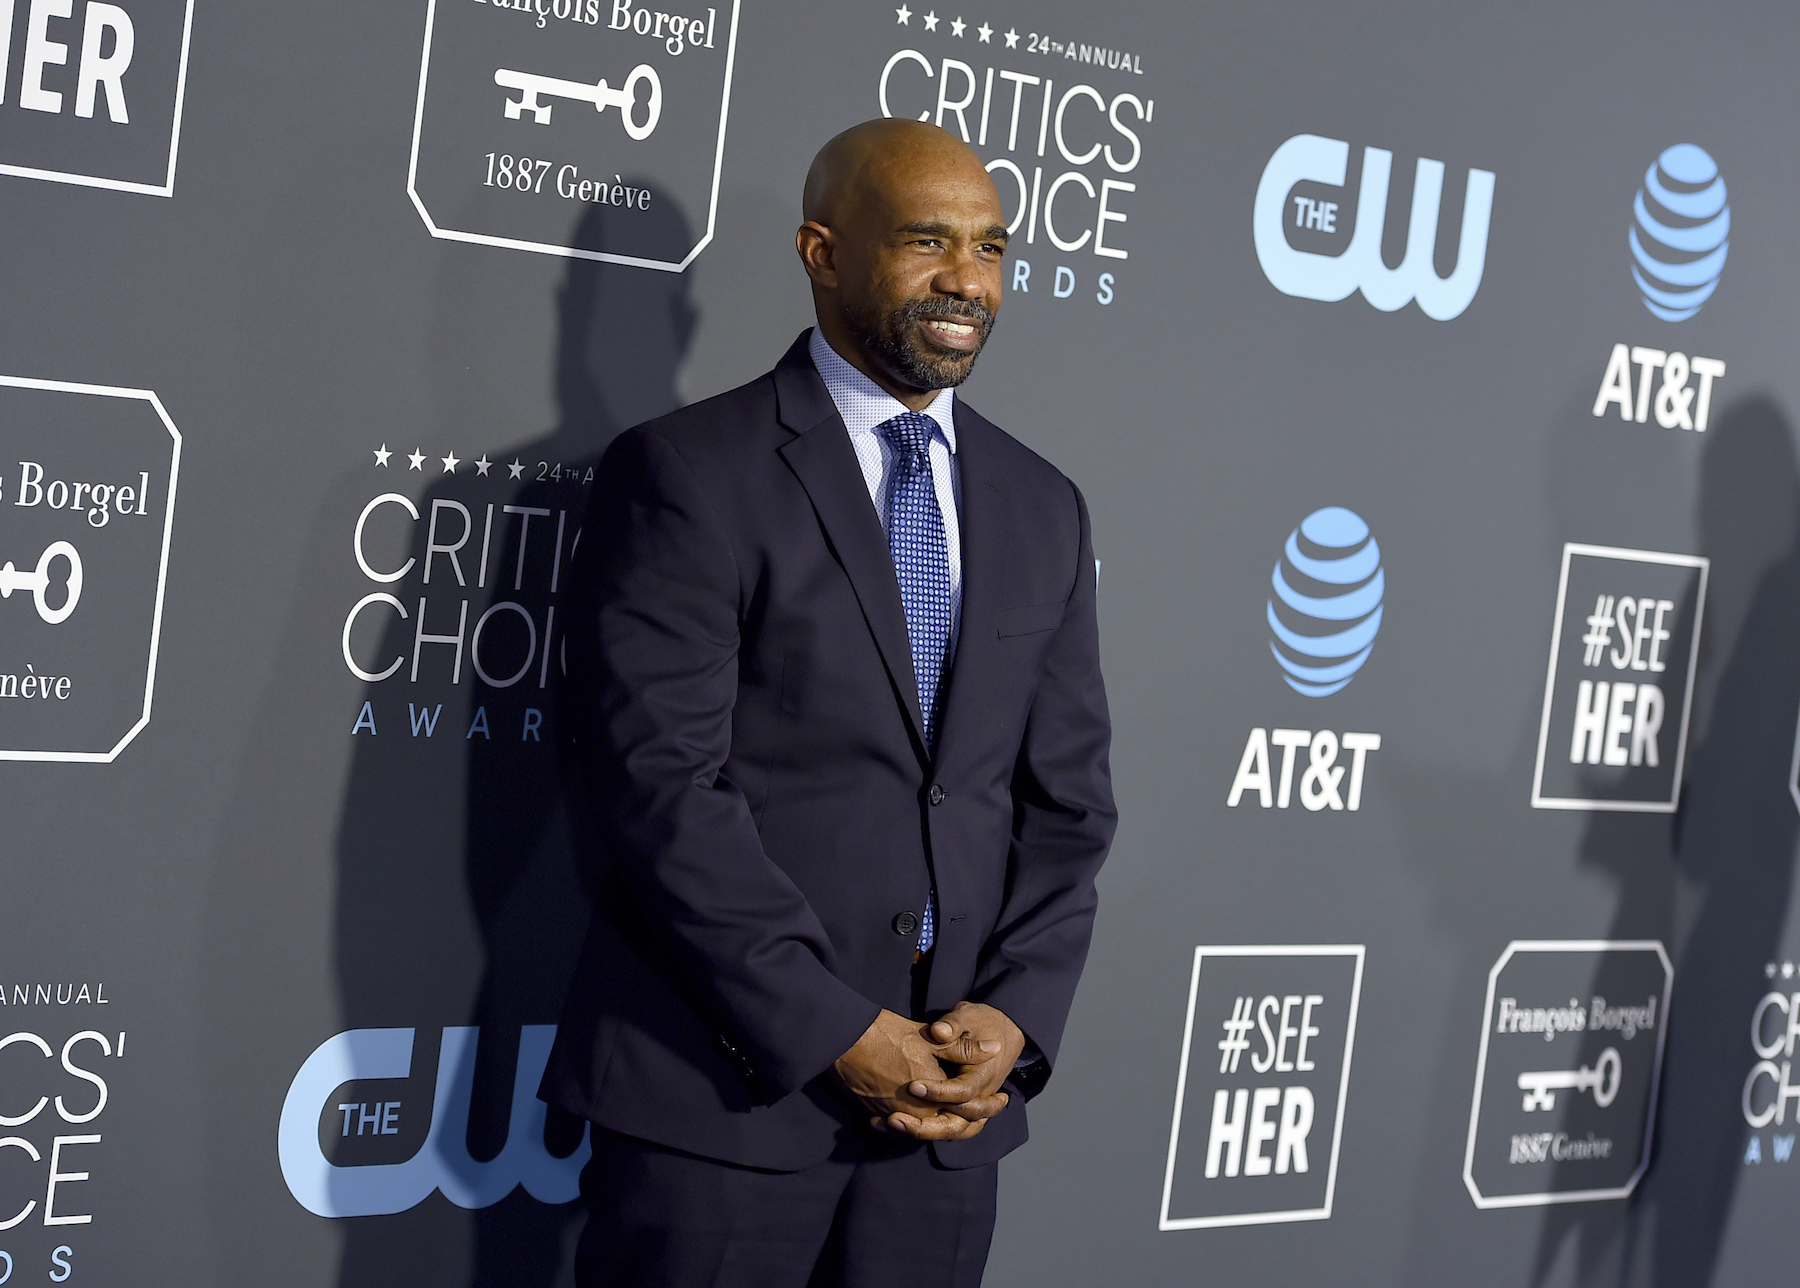 <div class='meta'><div class='origin-logo' data-origin='AP'></div><span class='caption-text' data-credit='Jordan Strauss/Invision/AP'>Michael Beach arrives at the 24th annual Critics' Choice Awards on Sunday, Jan. 13, 2019, at the Barker Hangar in Santa Monica, Calif.</span></div>